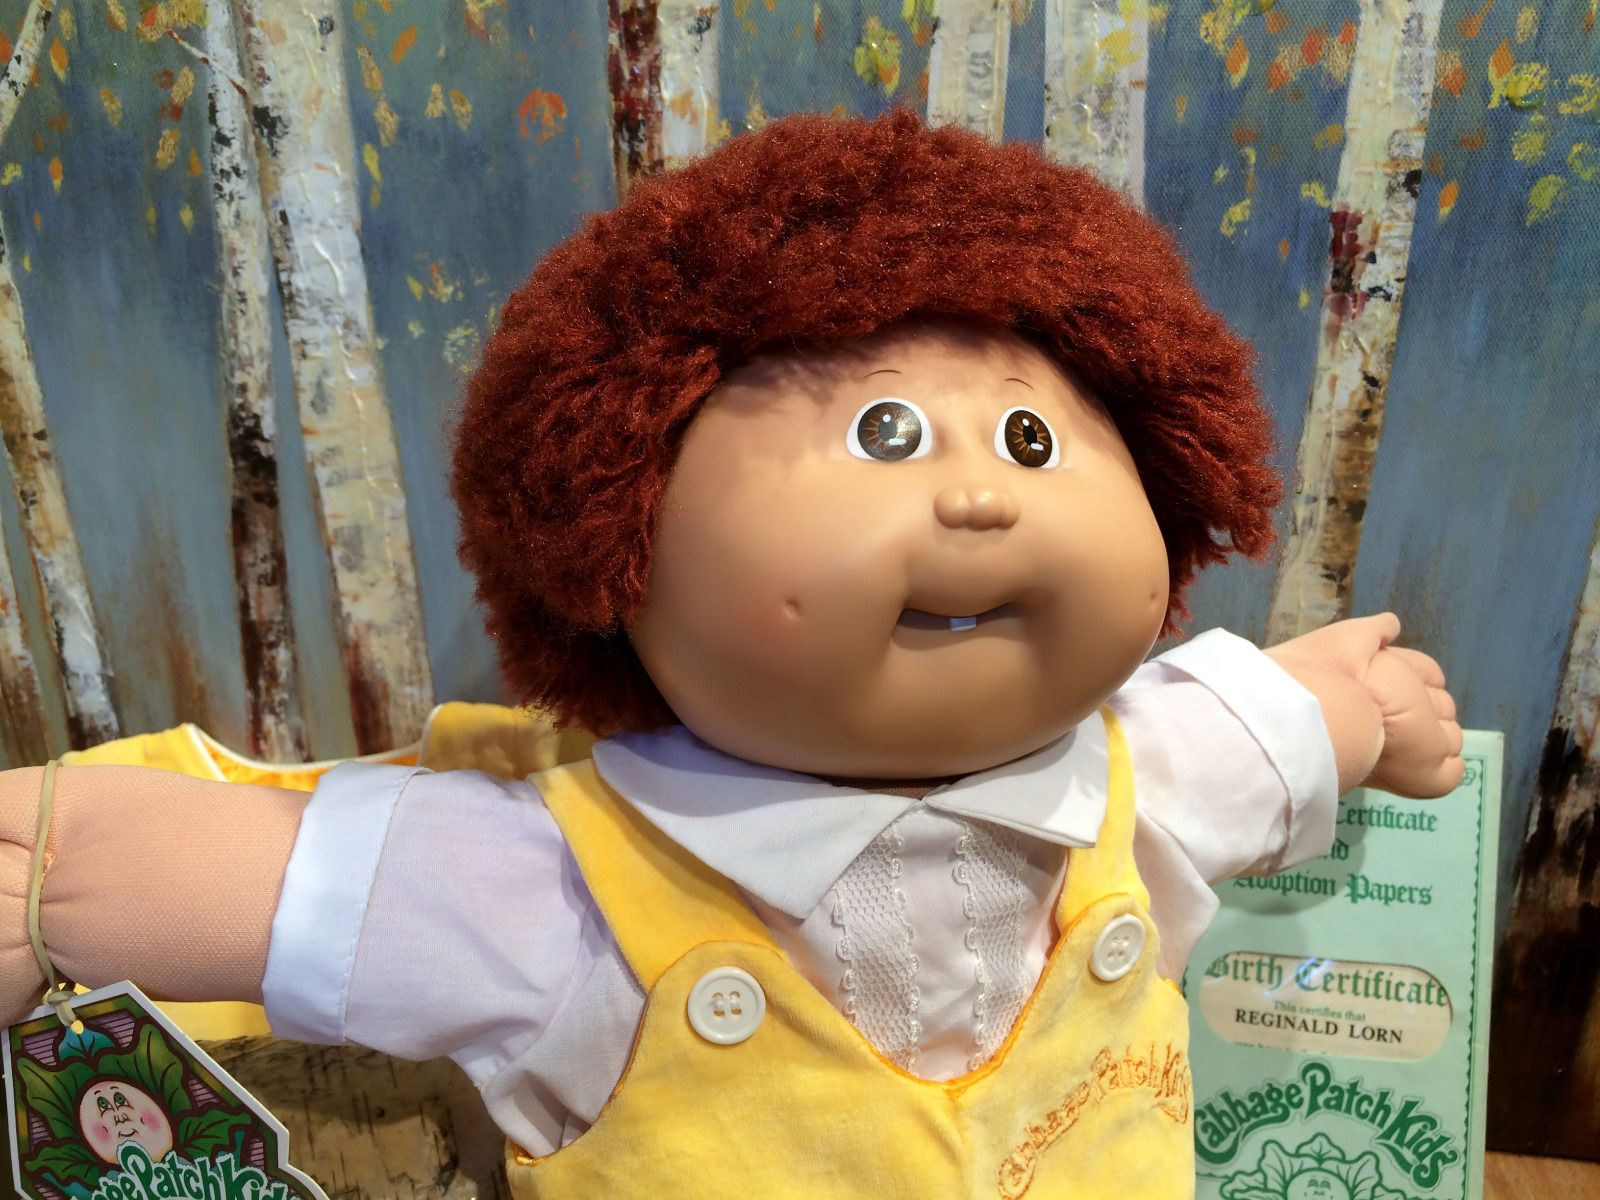 Vintage 1985 Coleco Cabbage Patch Kid Reginald Lorn With Outfit Papers Tag Cabbage Patch Dolls Cabbage Patch Kids Cabbage Patch Babies